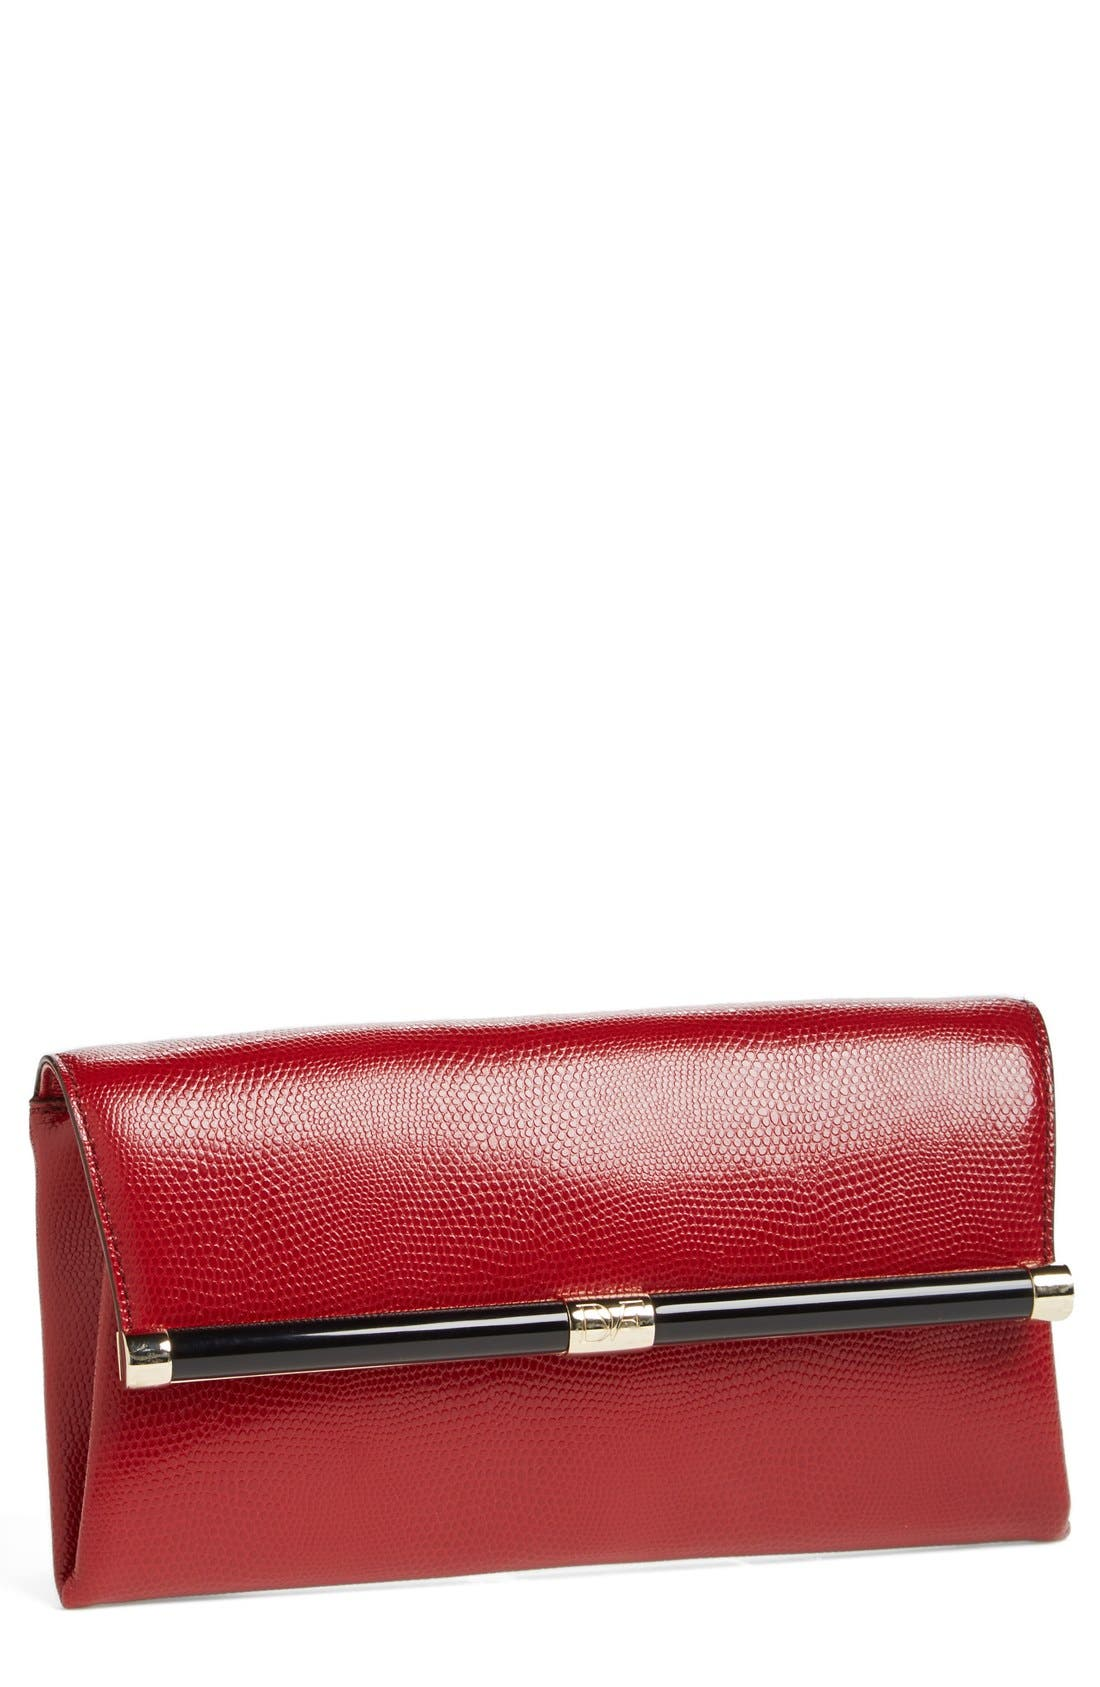 Alternate Image 1 Selected - Diane von Furstenberg '440' Embossed Leather Envelope Clutch